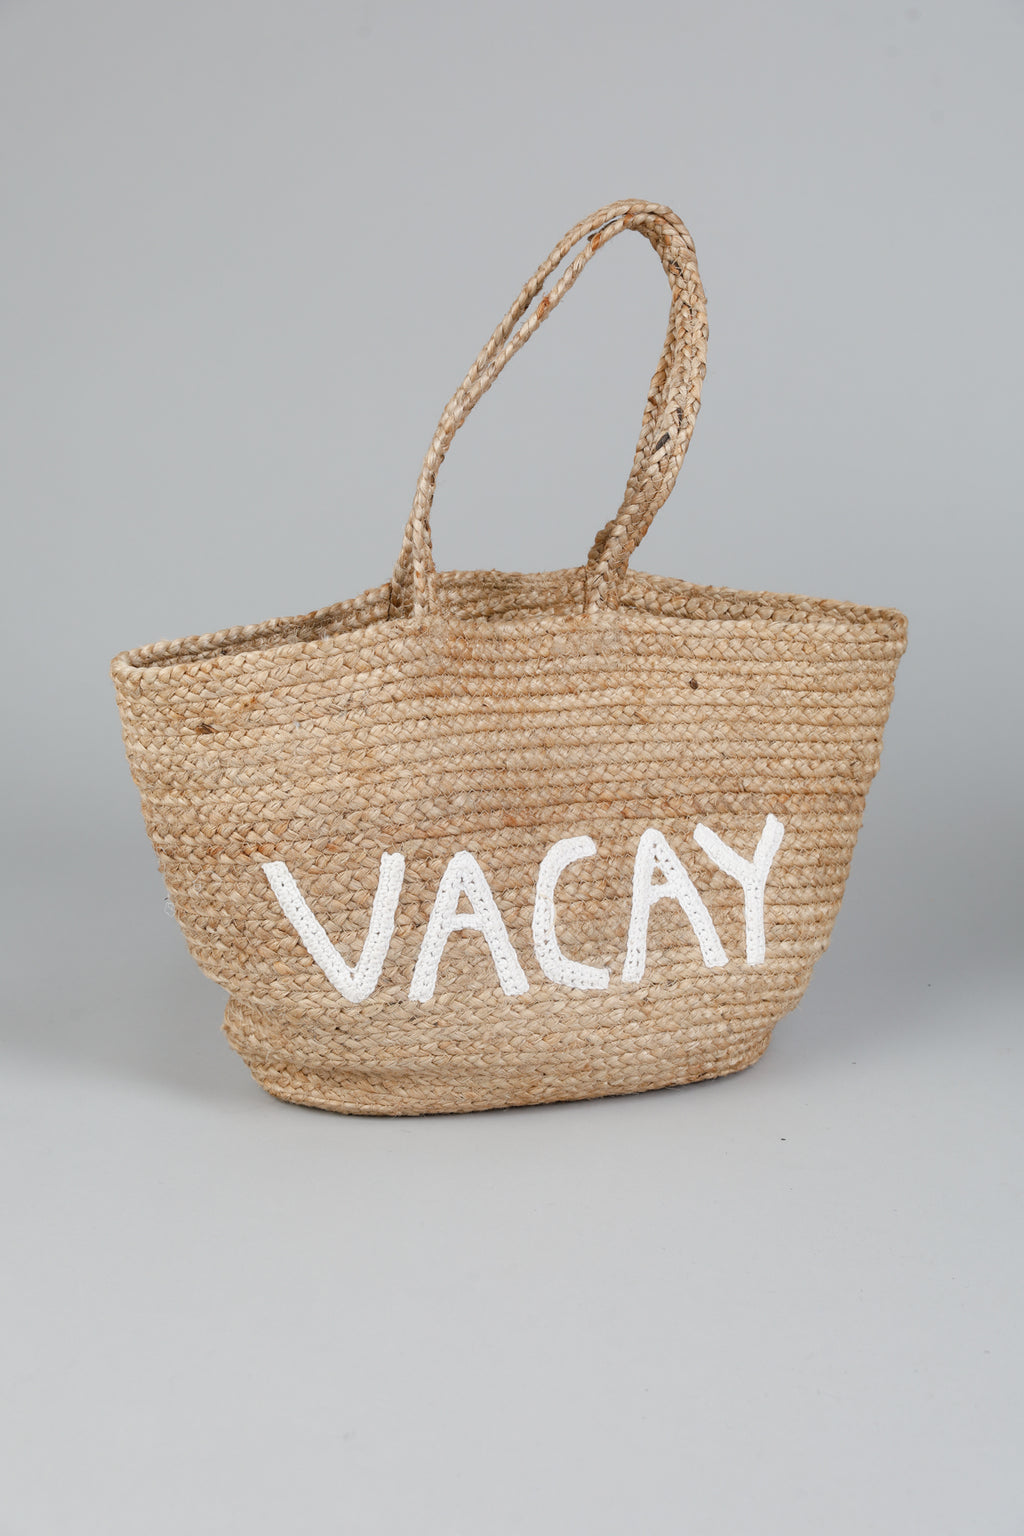 Holiday - Vacay Beach Bag